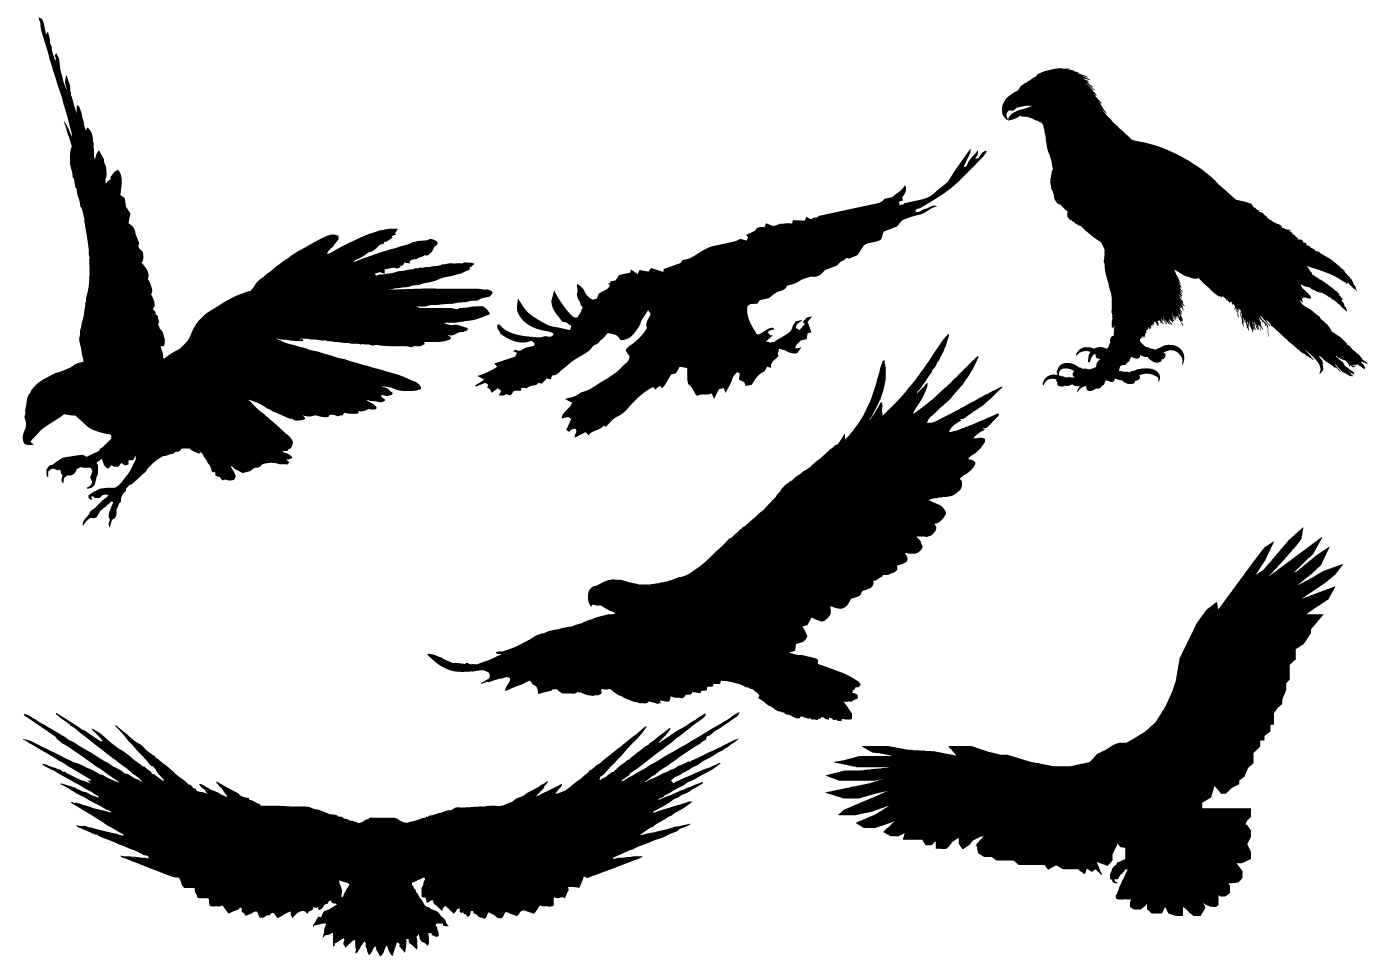 eagle vector clipart free download - photo #18